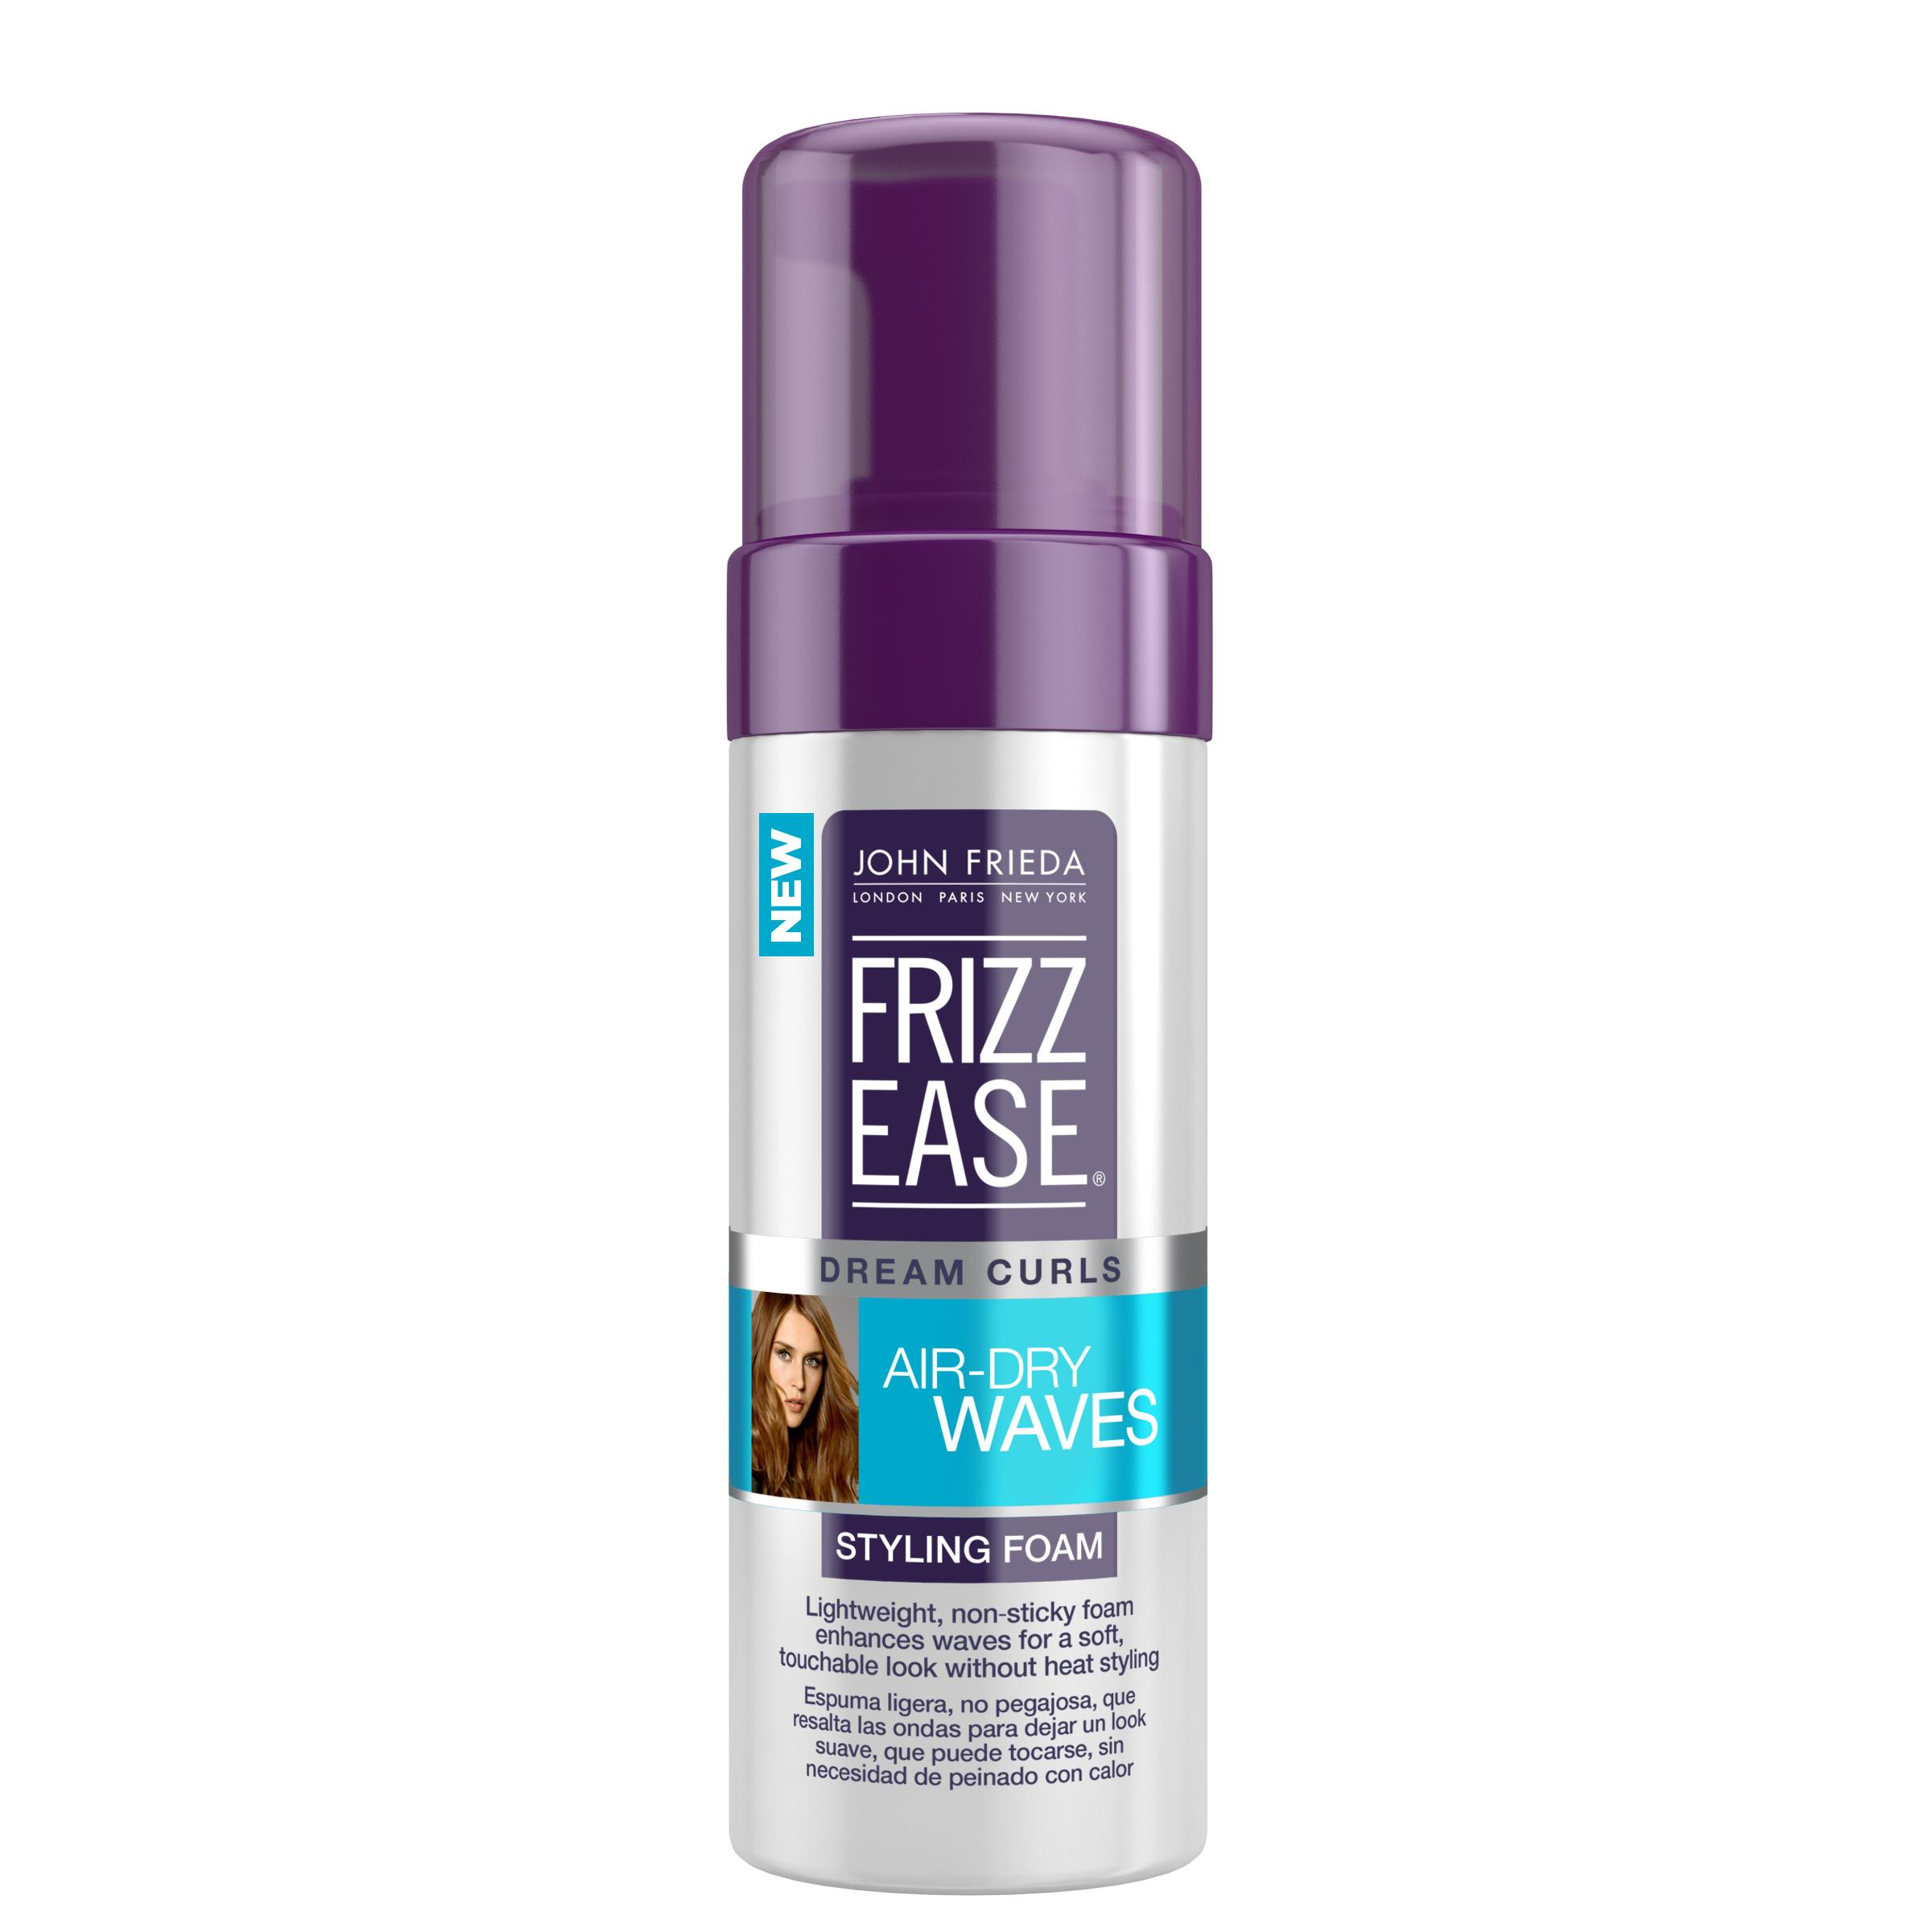 John Frieda Frizz Ease Dream Curls Air-Dry Waves Styling Foam